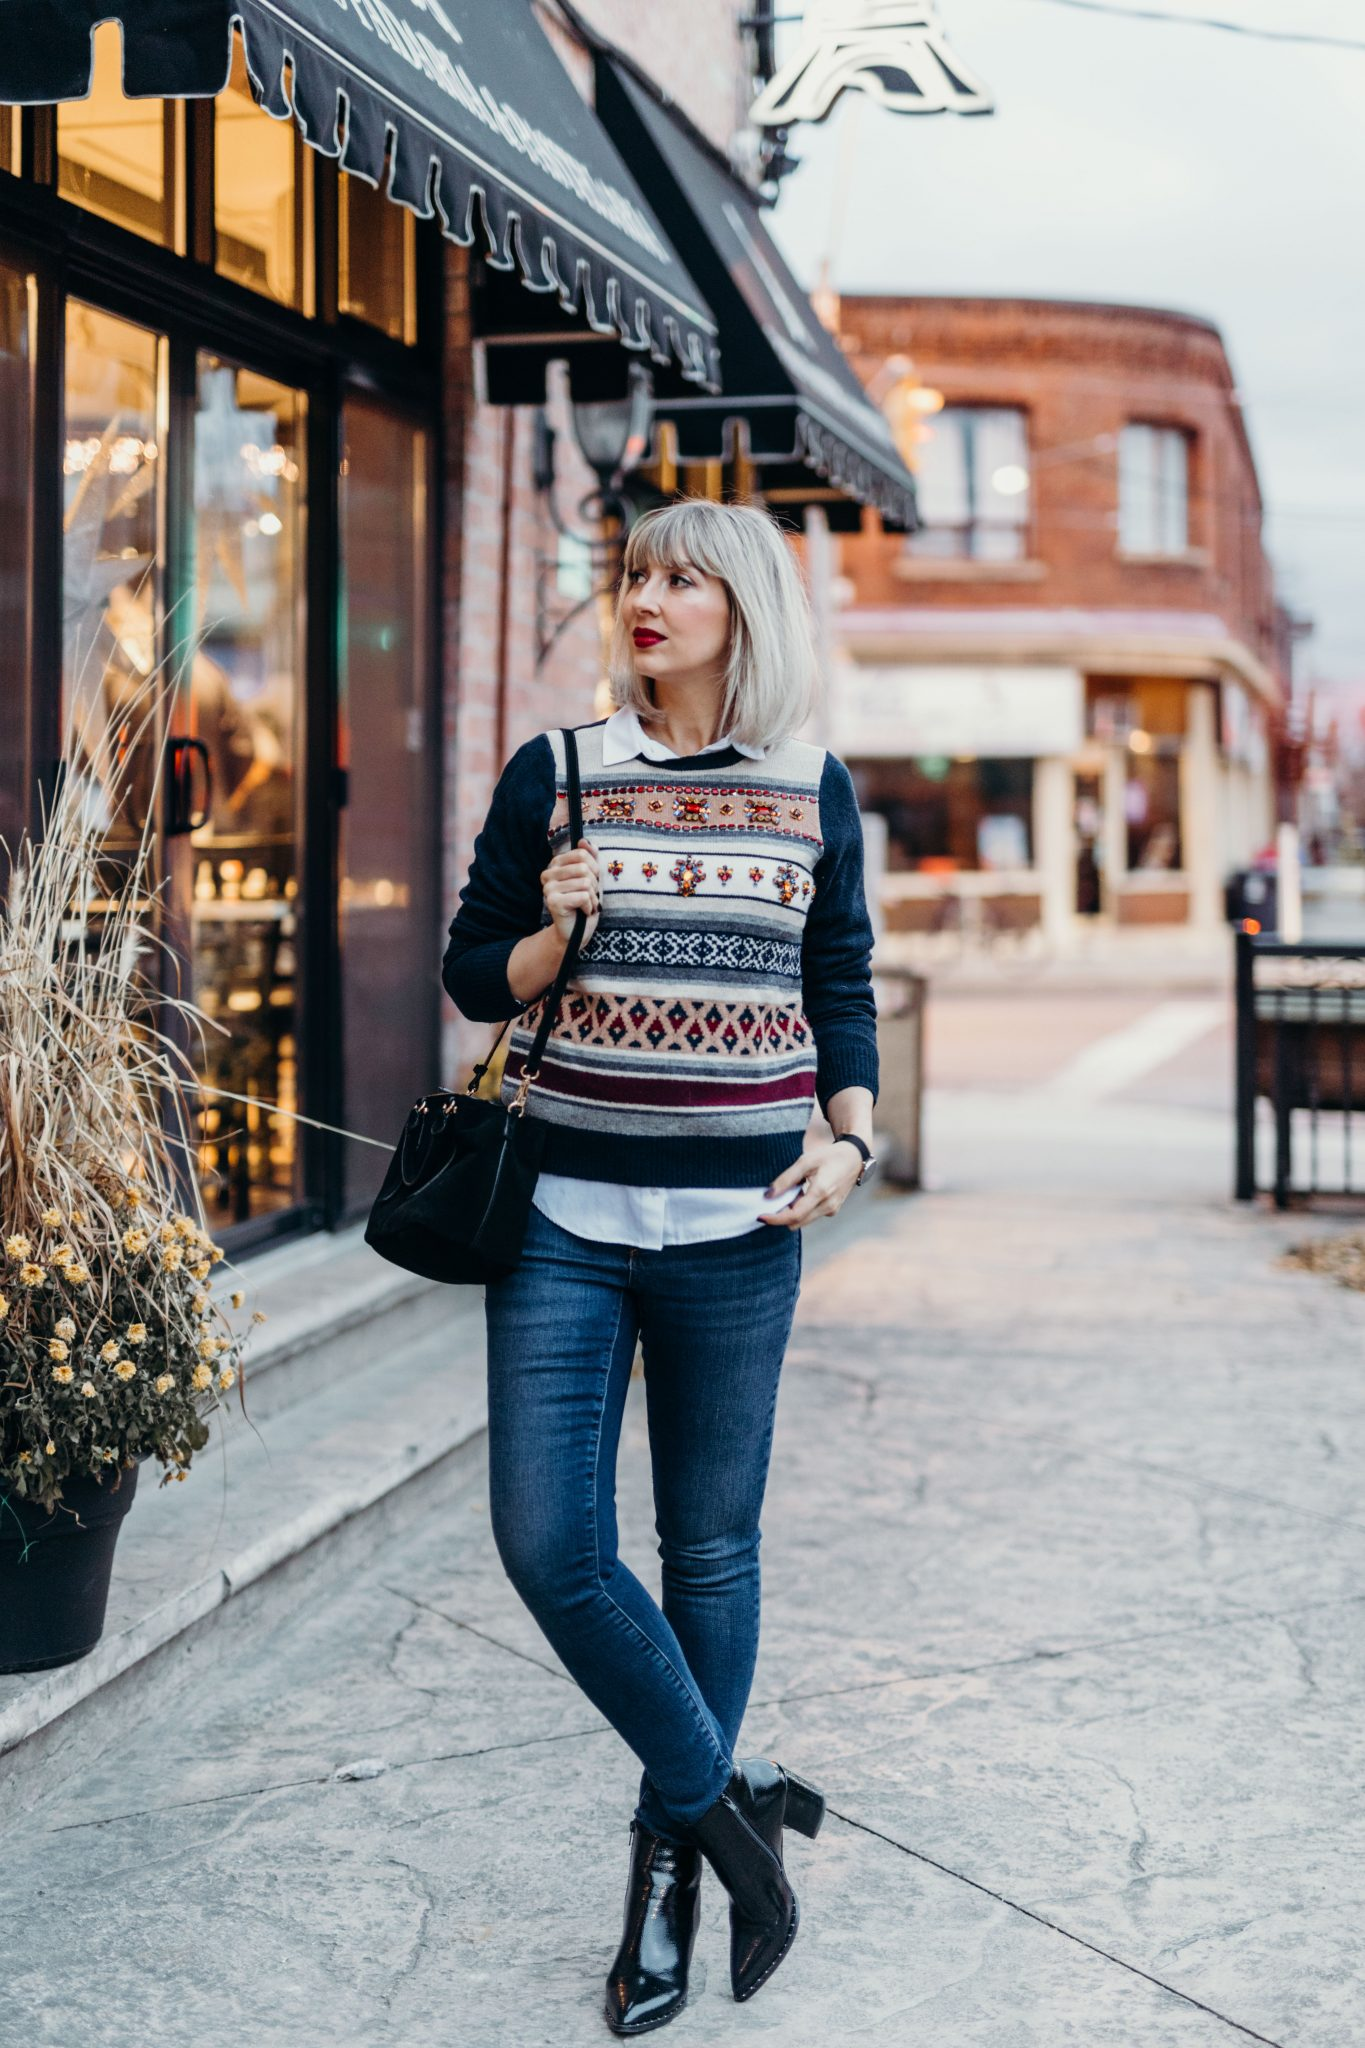 Christmas embellished sweater city street style (2 of 11)